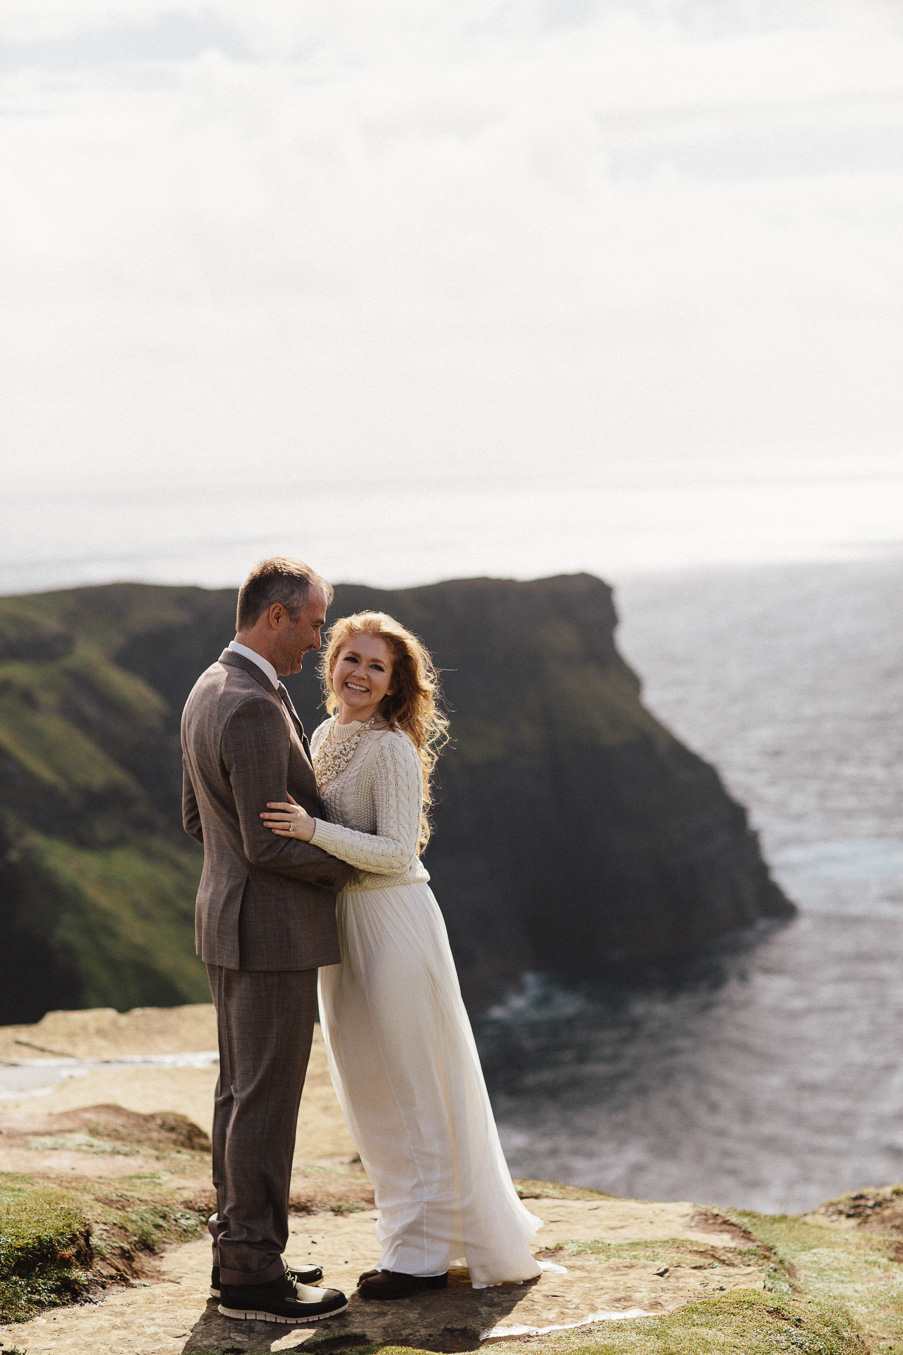 Elopement at the cliffs of moher